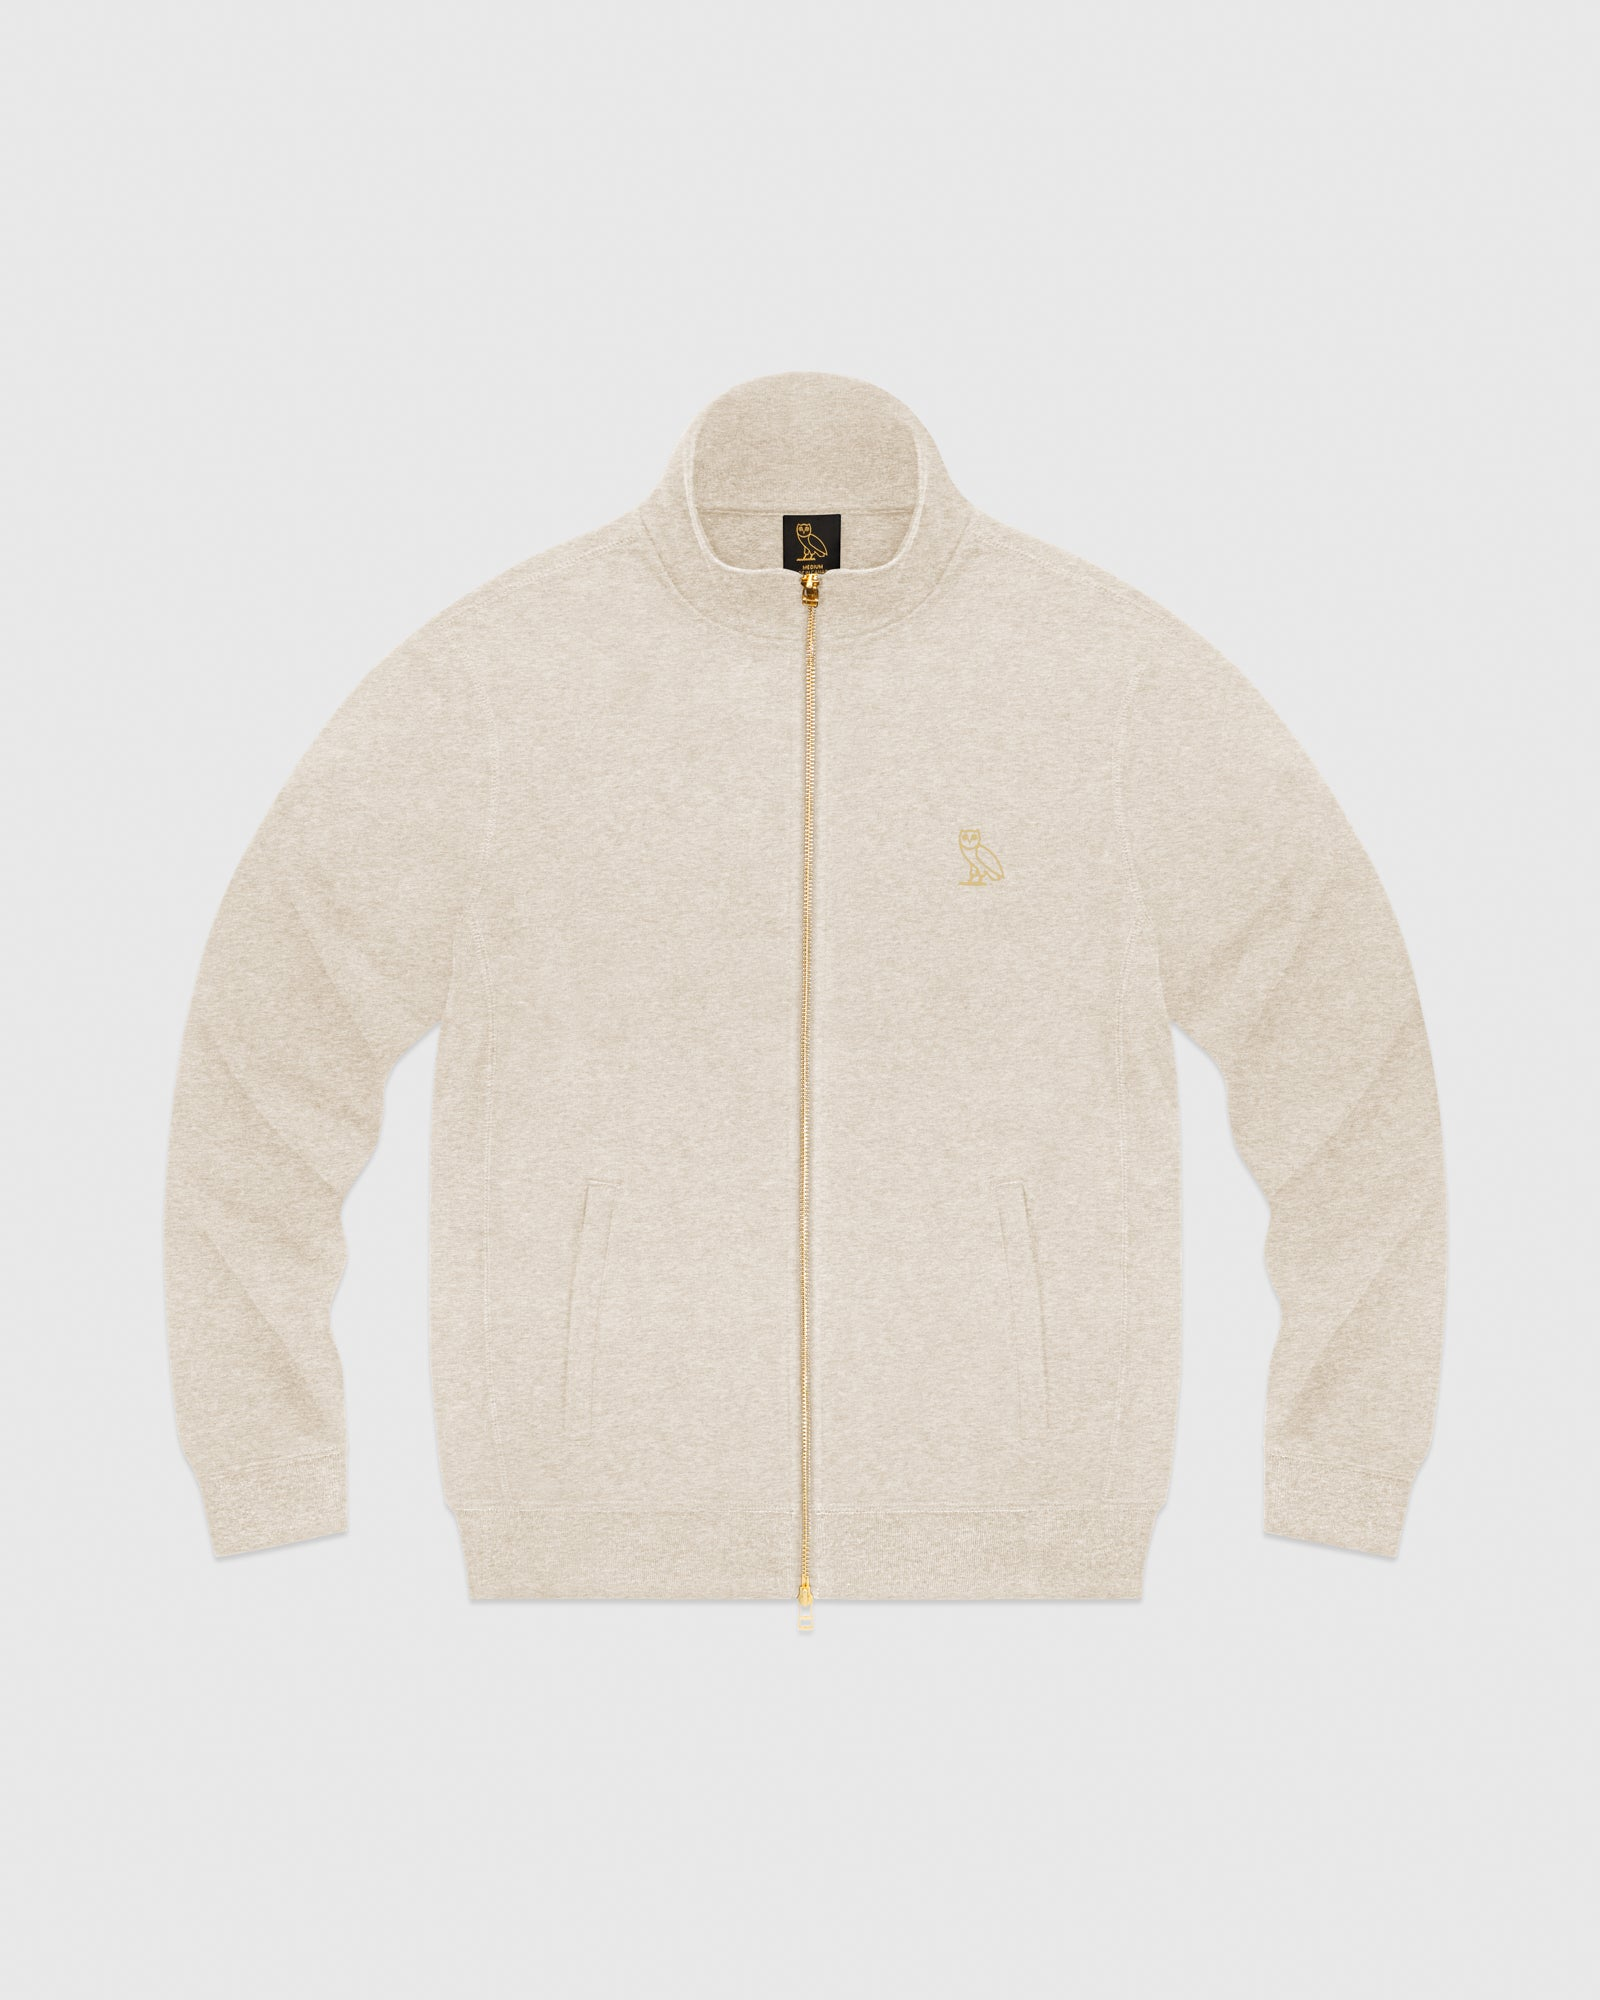 OVO FRENCH TERRY ZIP JACKET - HEATHER OATMEAL